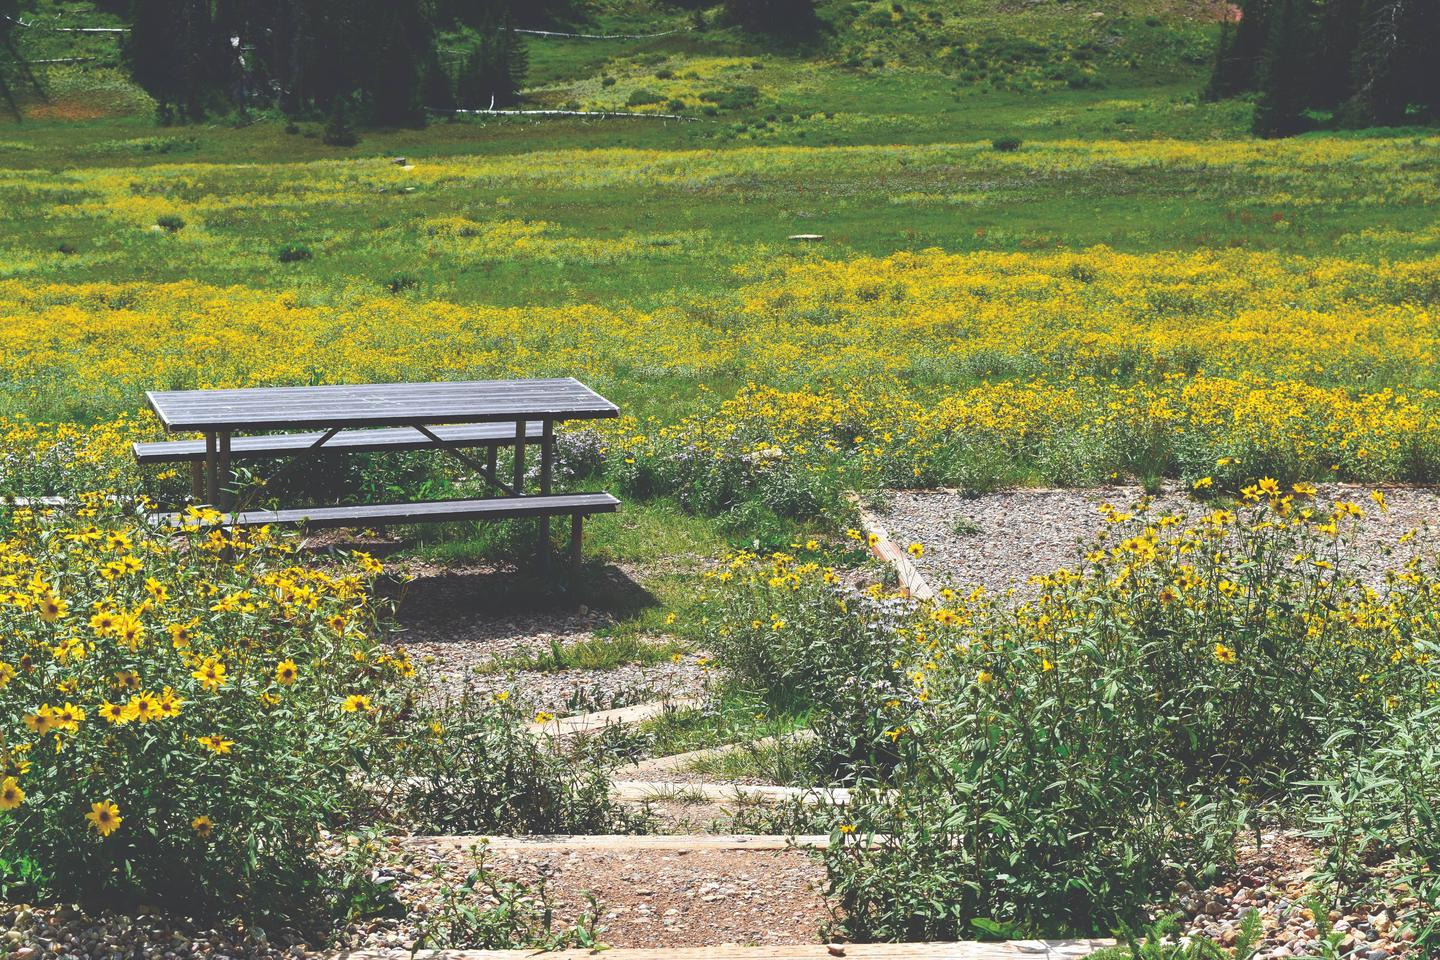 Path leading down to a picnic table, tent pad and meadow of flowers. Each campsite has a picnic table plus tent pad for camping.